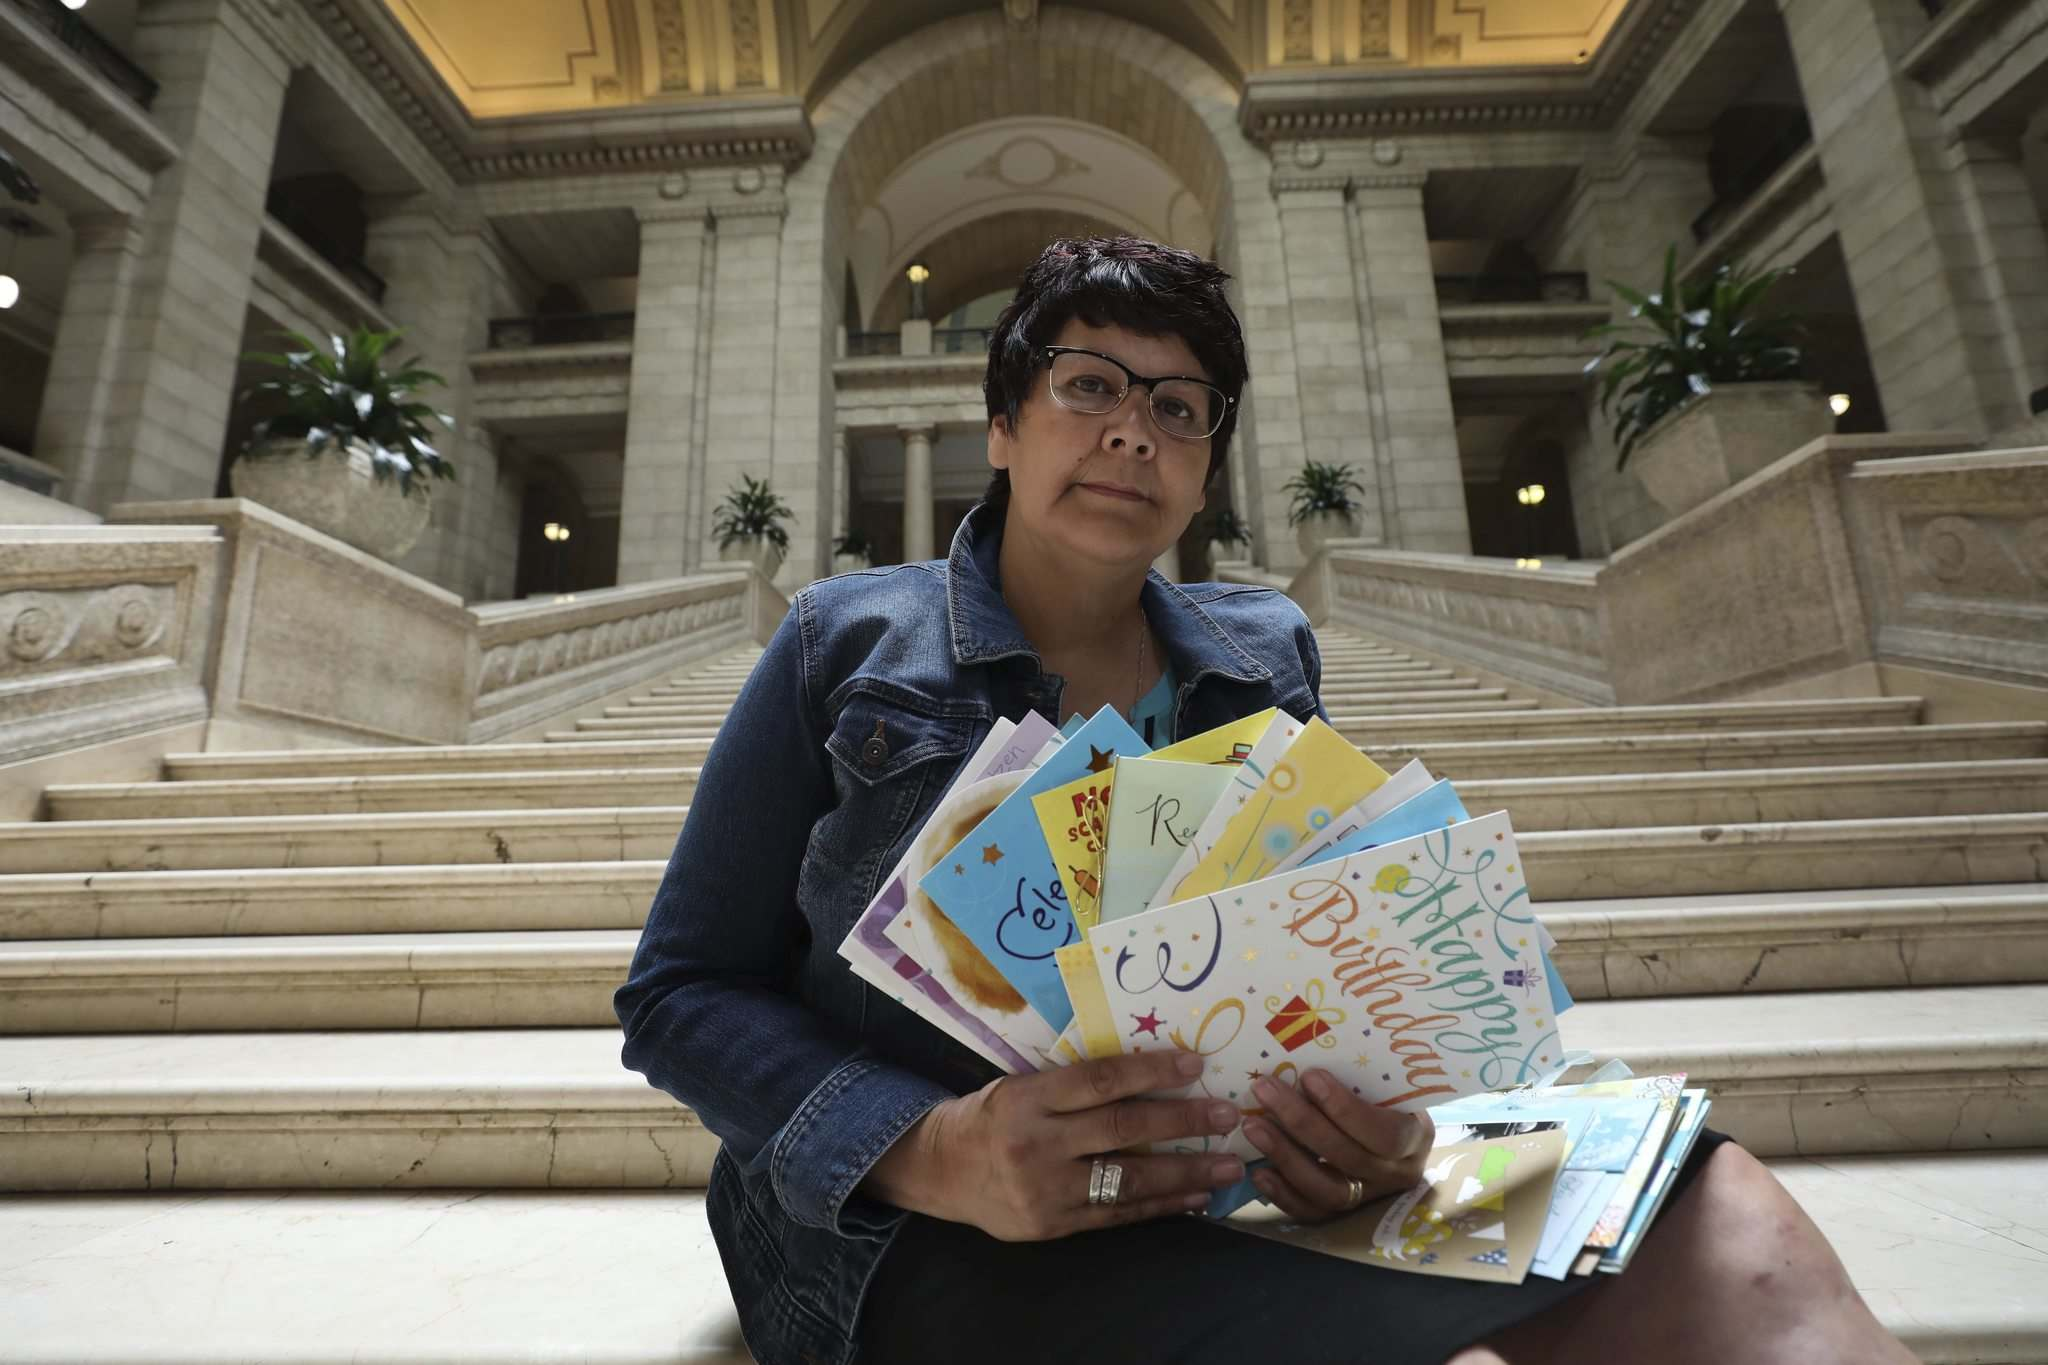 RUTH BONNEVILLE / WINNIPEG FREE PRESS</p><p>Chief Cathy Merrick of Cross Lake First Nation holds birthday cards on the steps of the Legislative Building Thursday. For Saturday story about Cross Lake's proposed health complex. Background info:Hundreds of birthday cards have been collected for the health minister from people from Cross Lake who are yearning for provincial funds to help build a health complex.</p><p>See story by Jessica Botelho-UrbanskiManitoba Legislature Reporter</p><p>June 14, 2018</p>